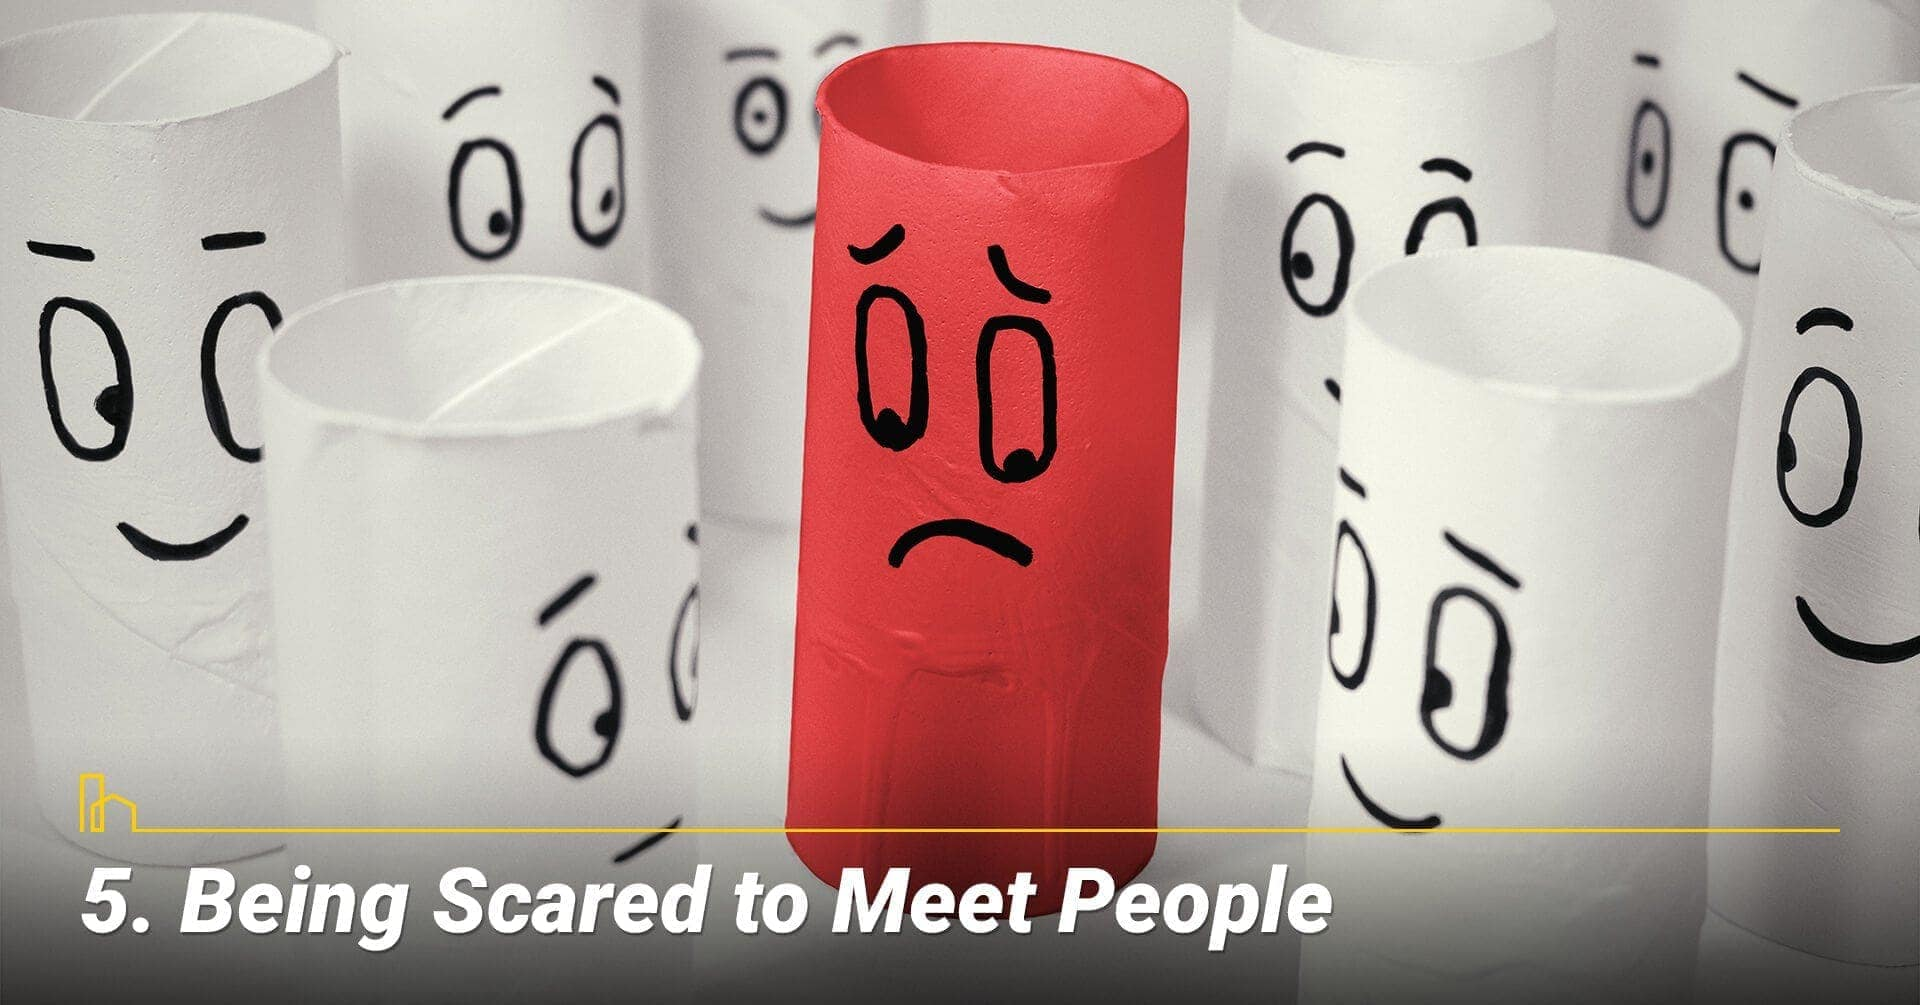 Being Scared to Meet People